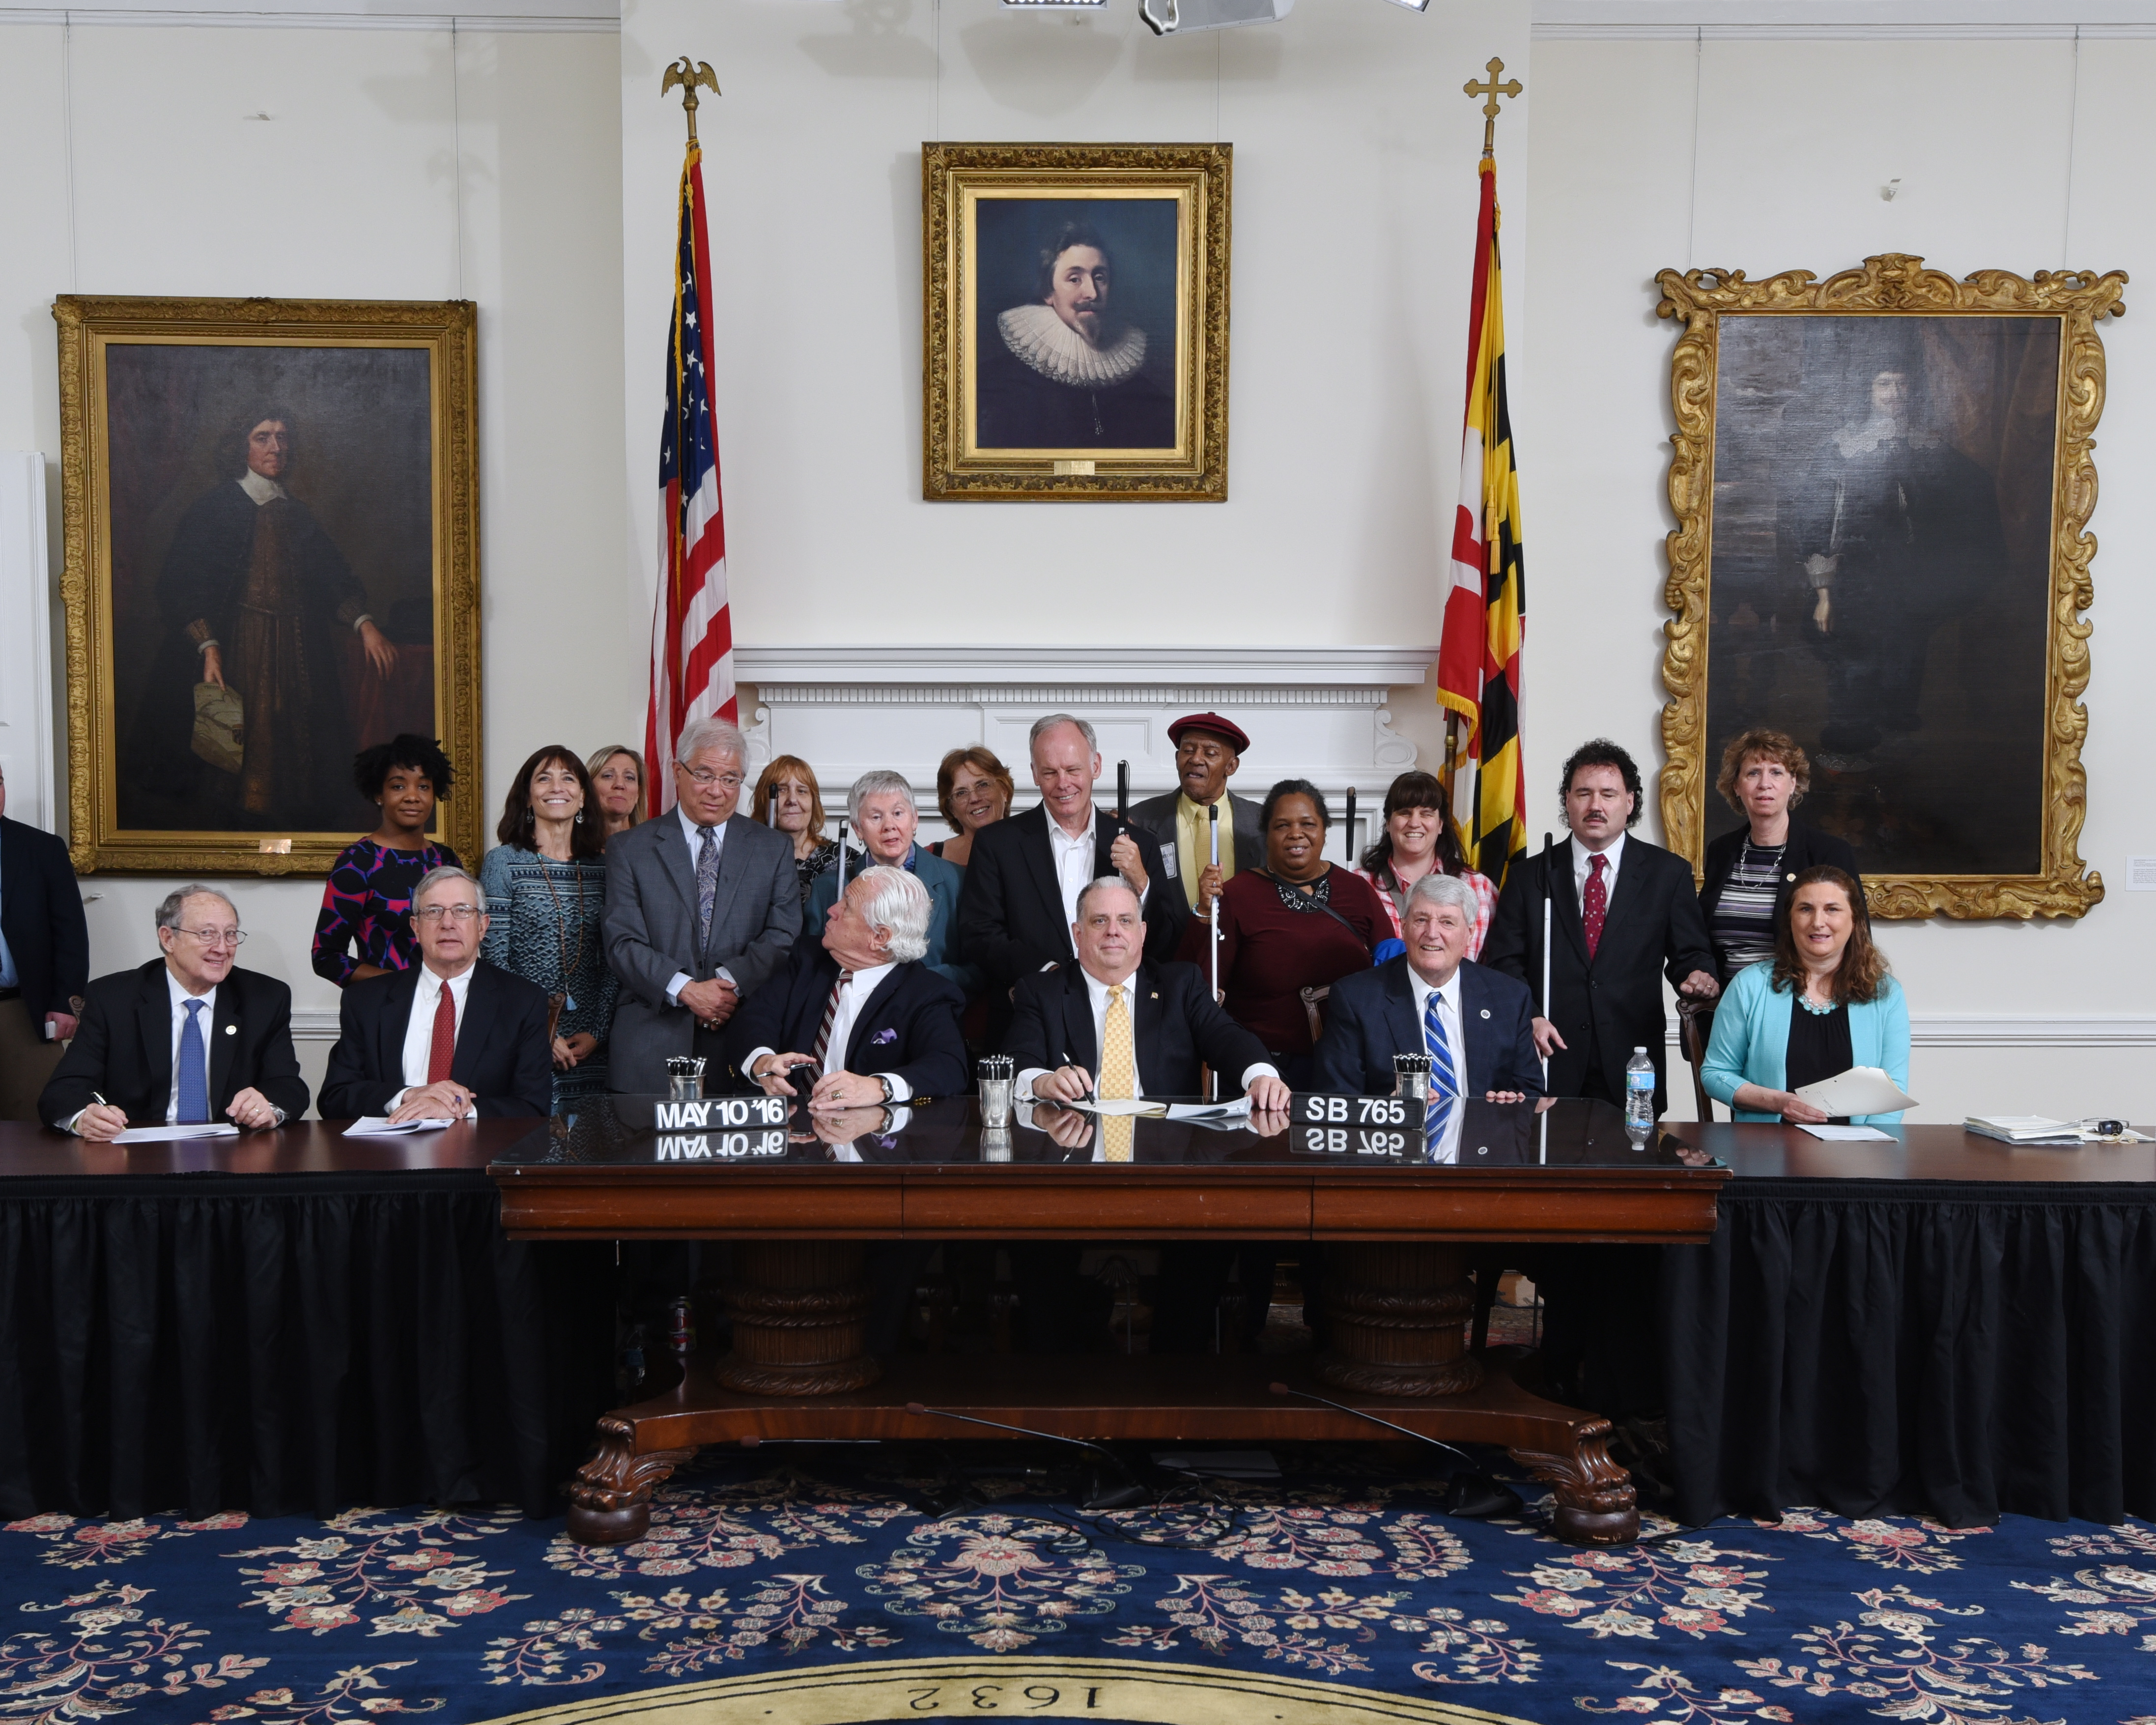 On May 10, 2016, Governor Hogan signed SB765 into law. This new law offers greater protection to disabled parents and caregivers in custody, guardianship, and adoption cases.